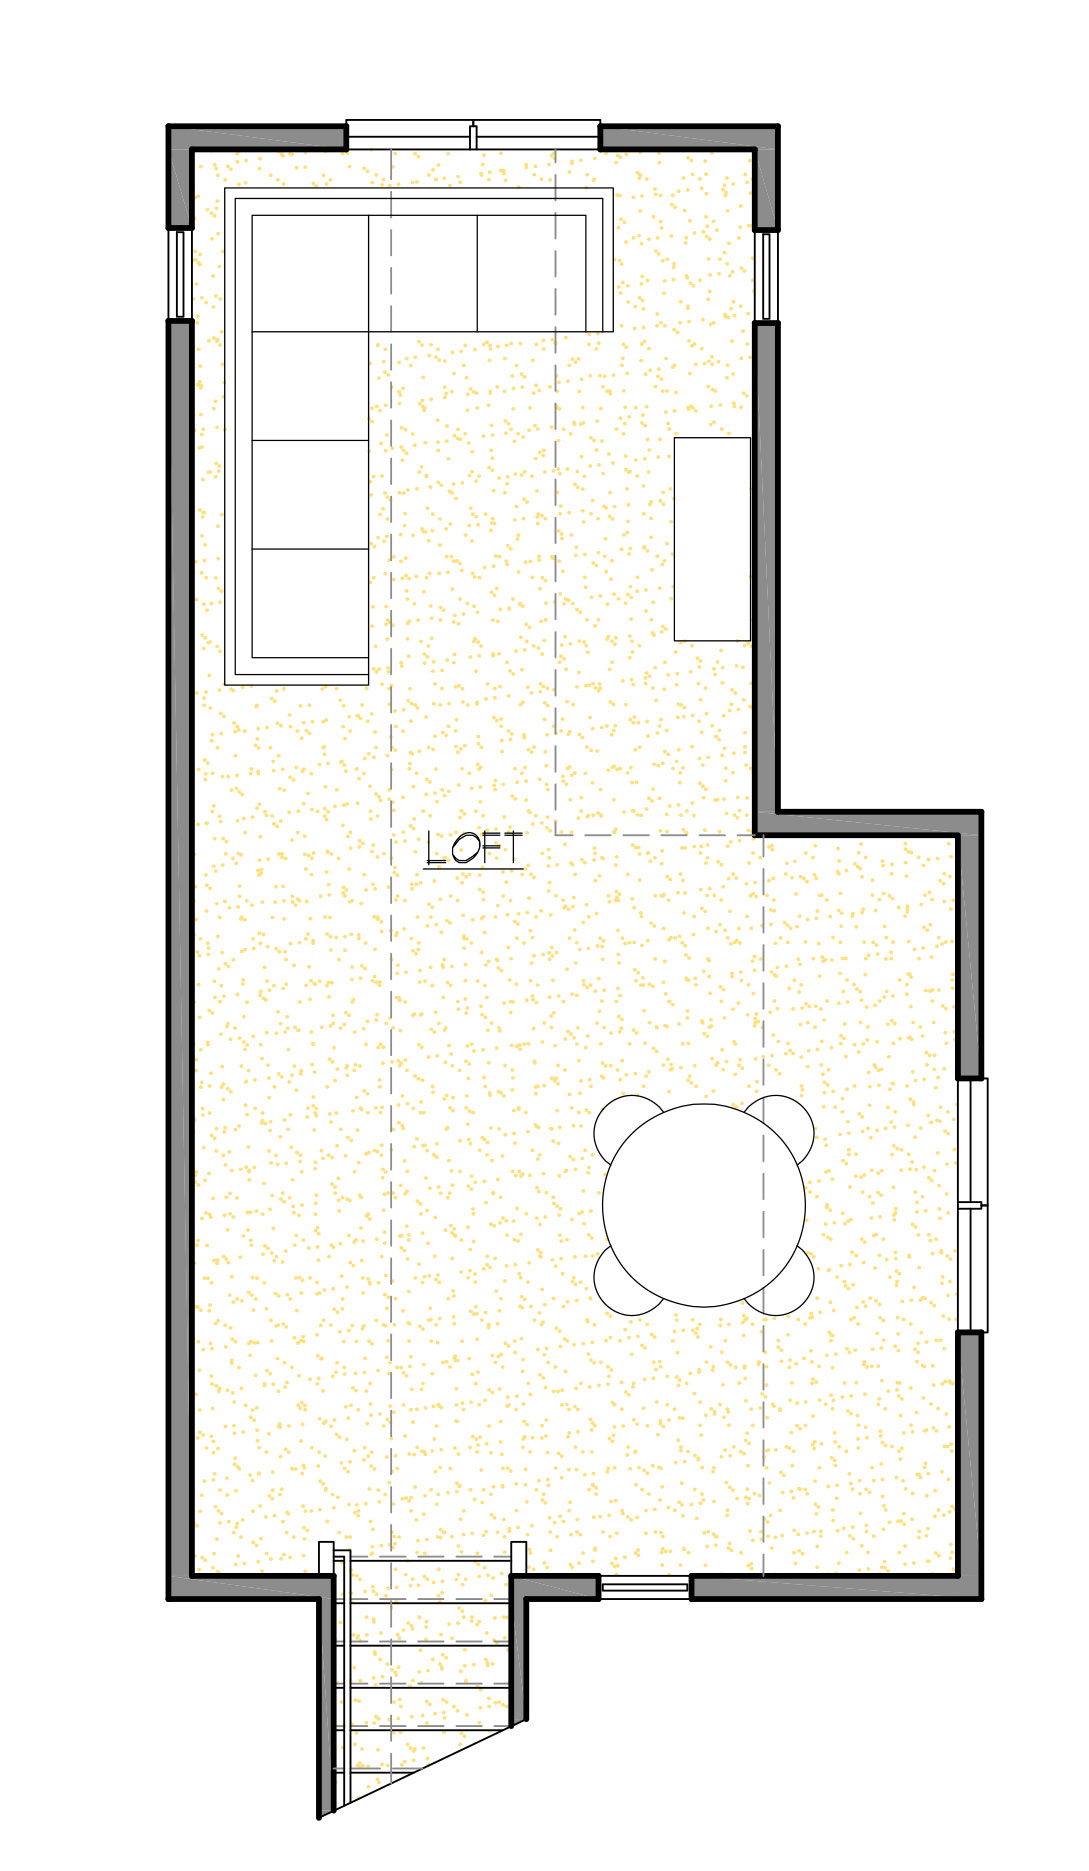 HP-6-Loft-plan-Crop.jpg